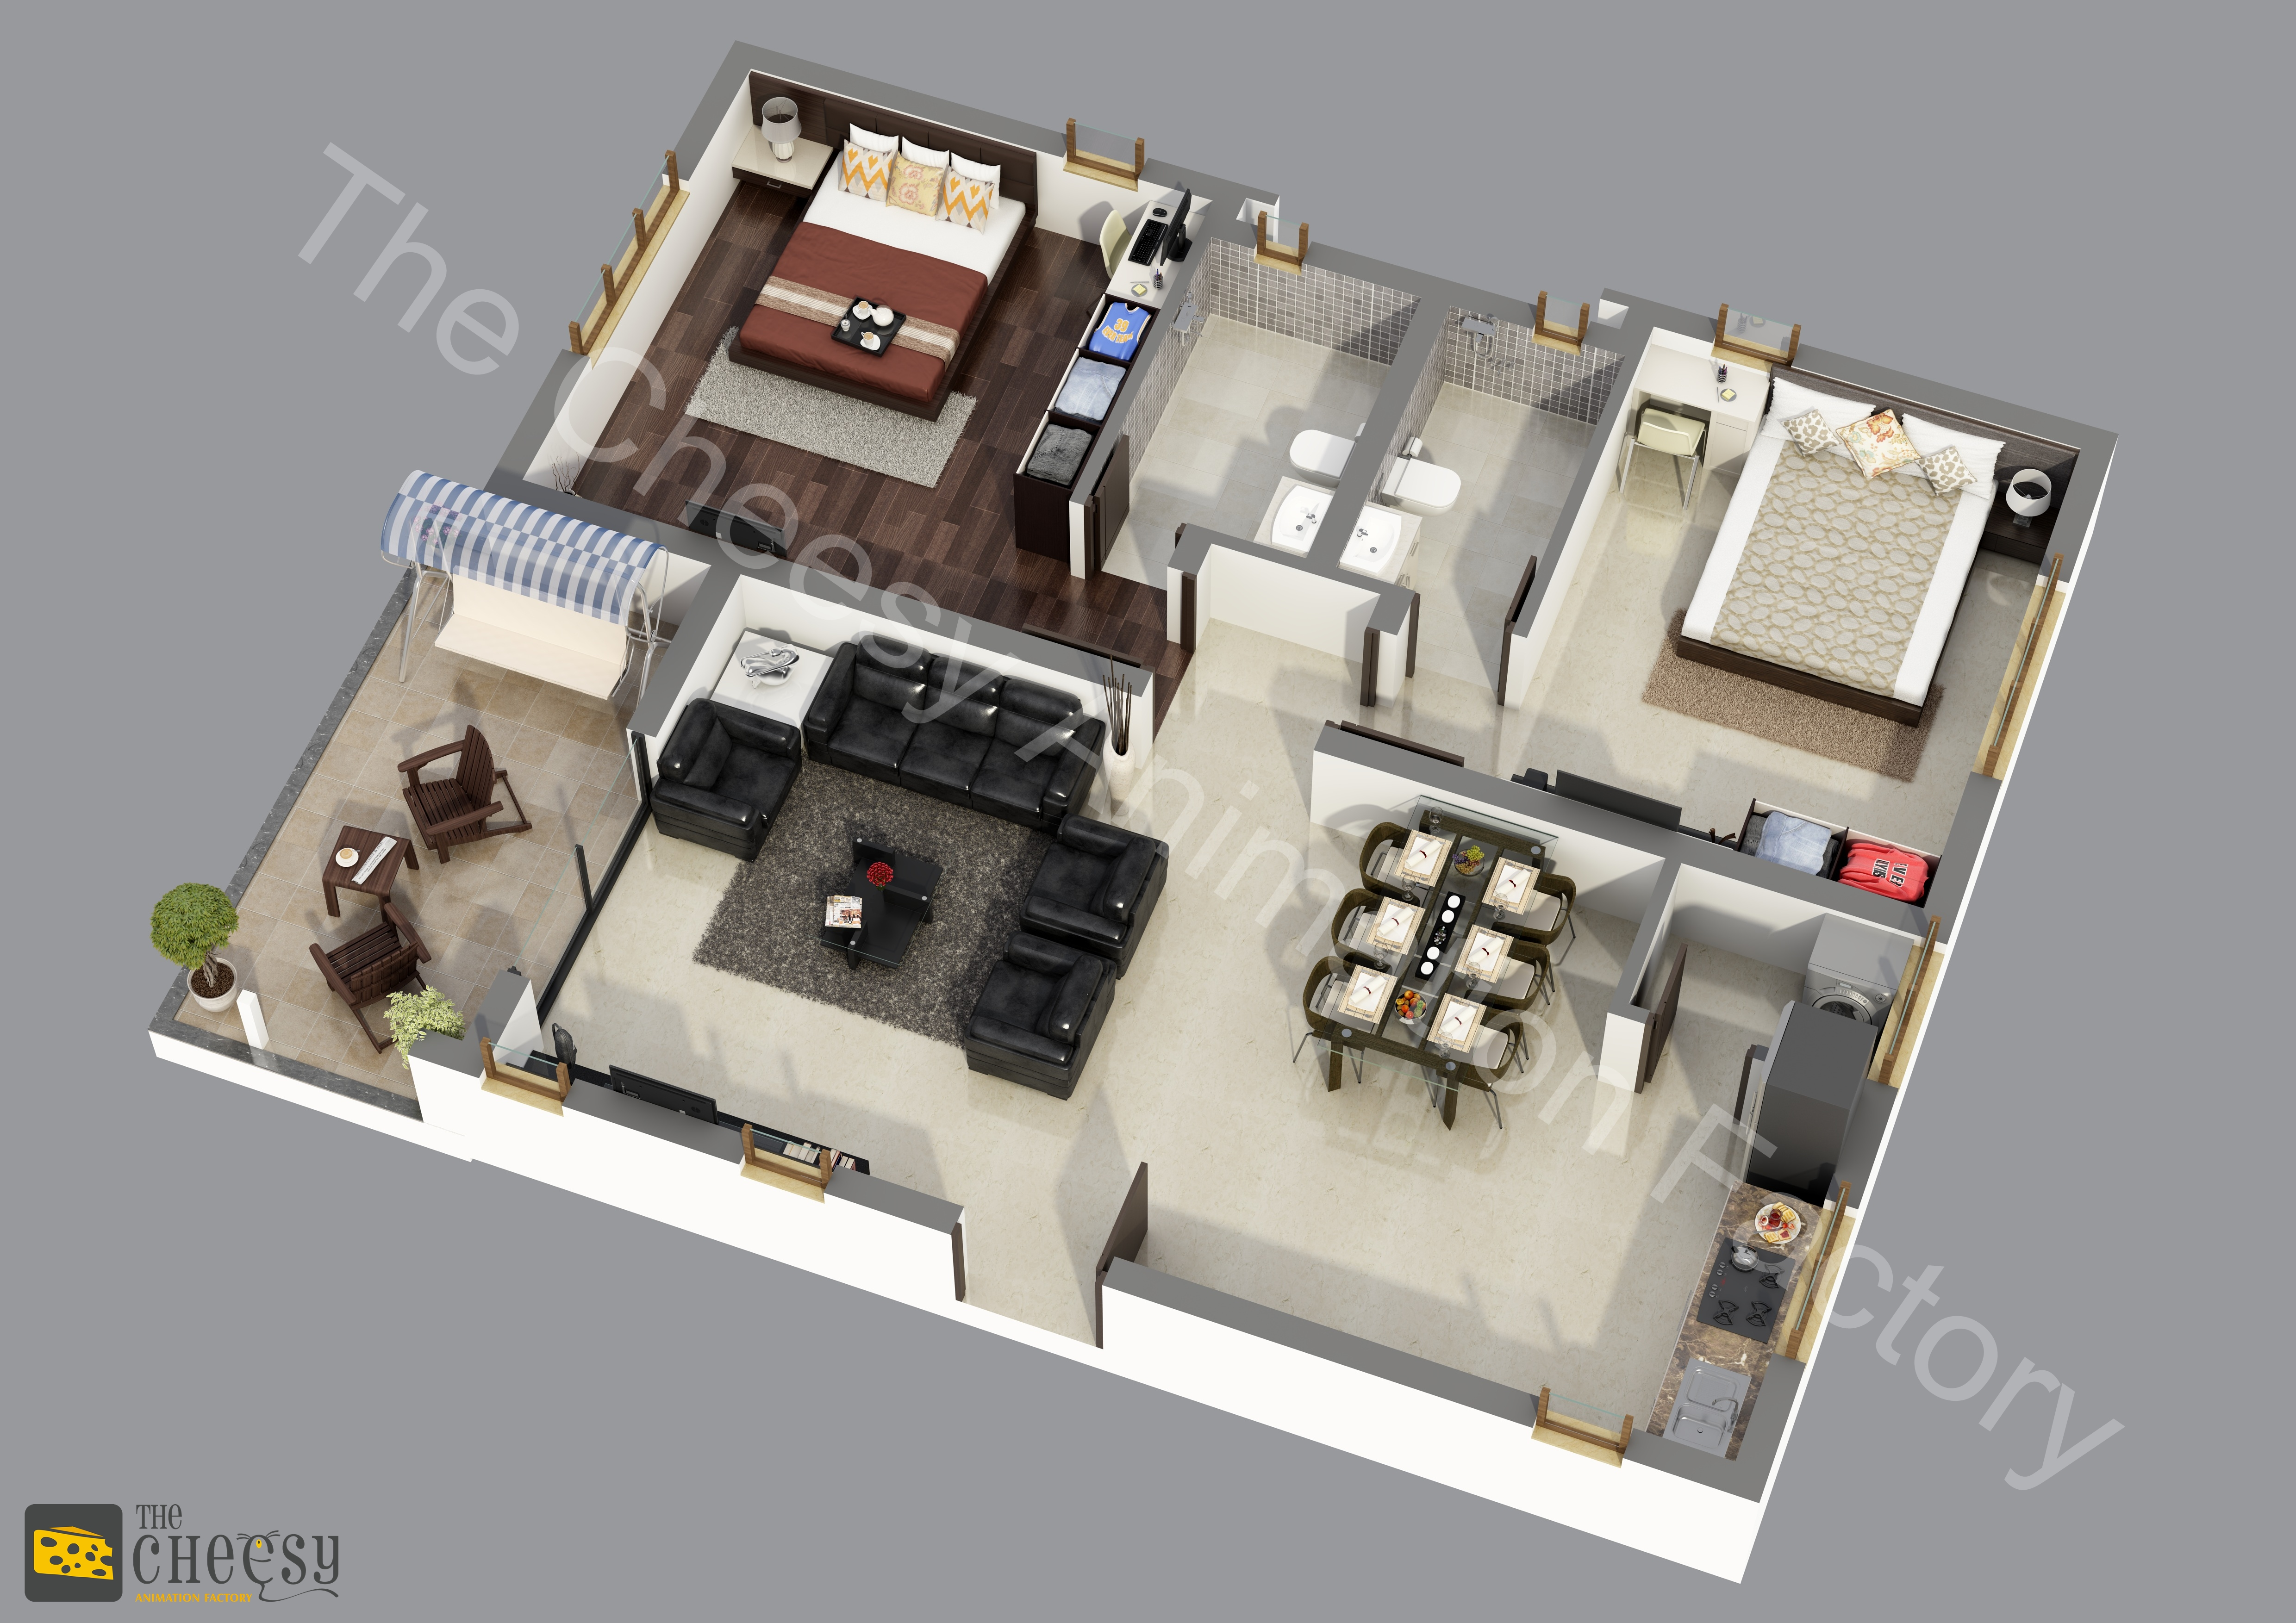 3d Restaurant Floor Plan Services 3darchitech01